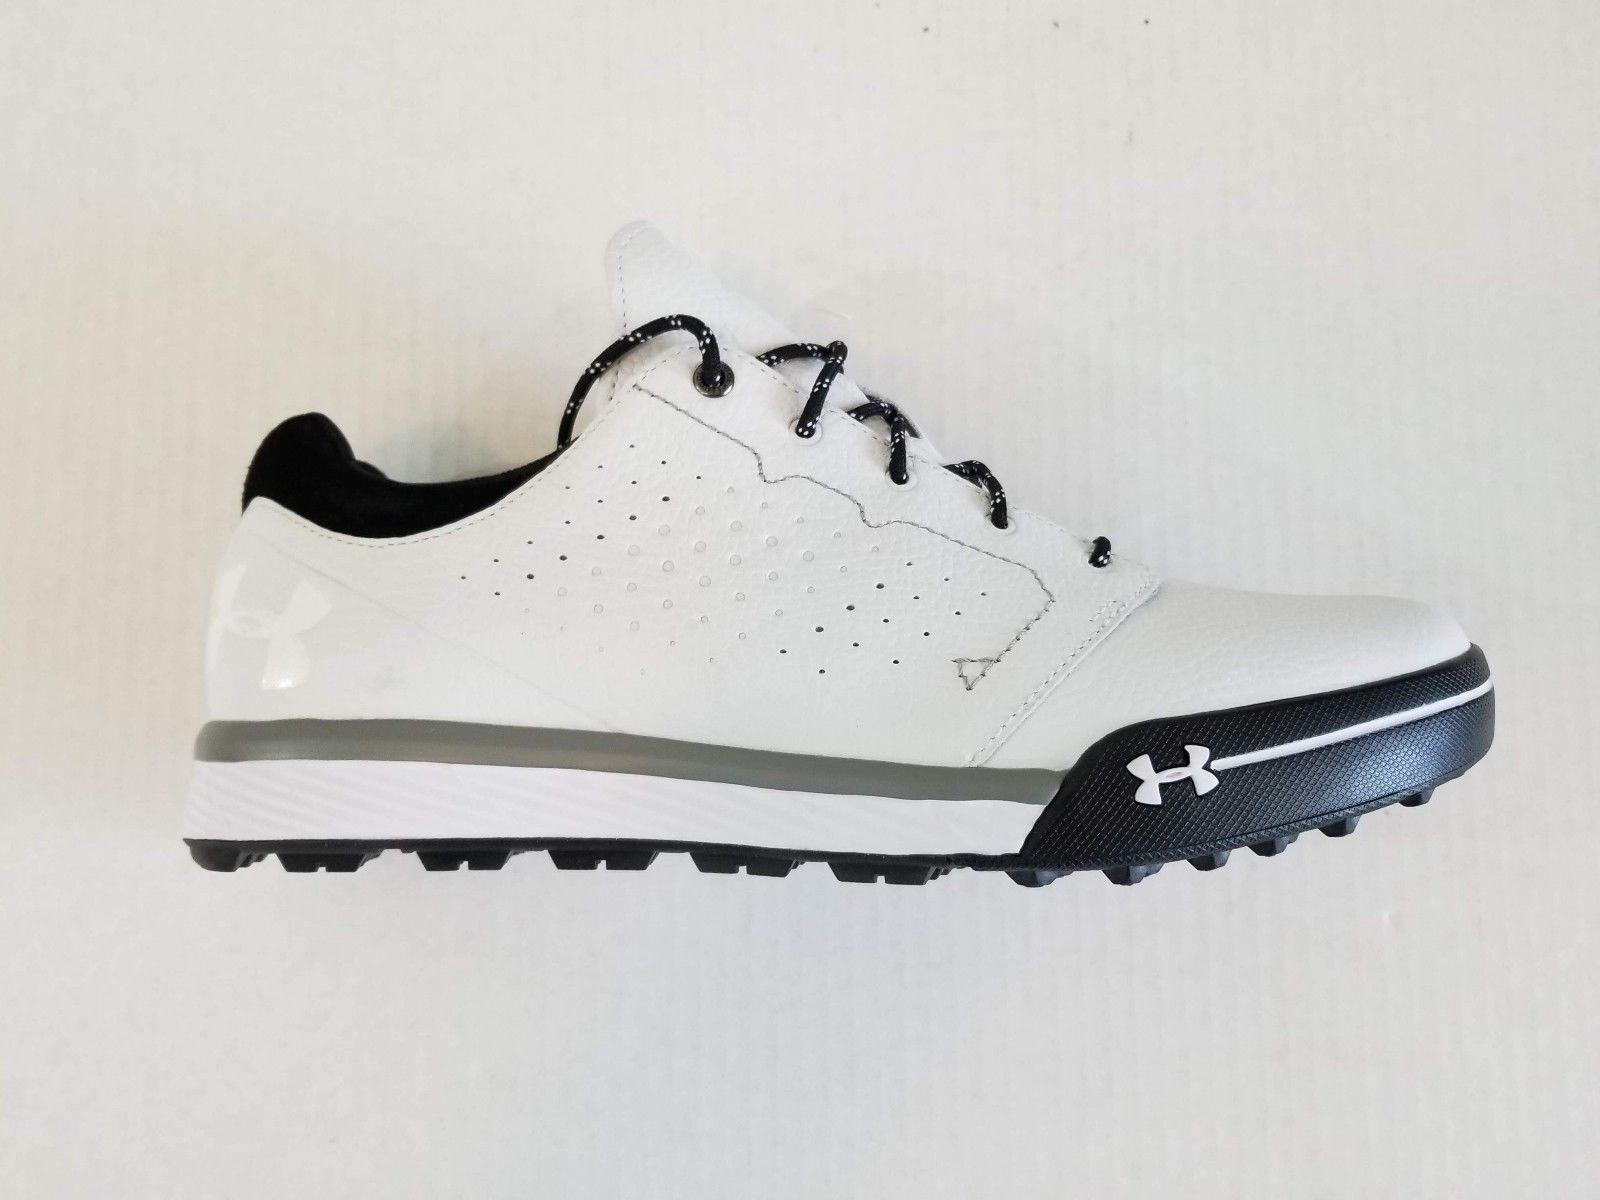 finest selection 45f38 bafb8 Under Armour Tempo Hybrid Mens Golf Shoes 1270207160 White Black Black Size  9